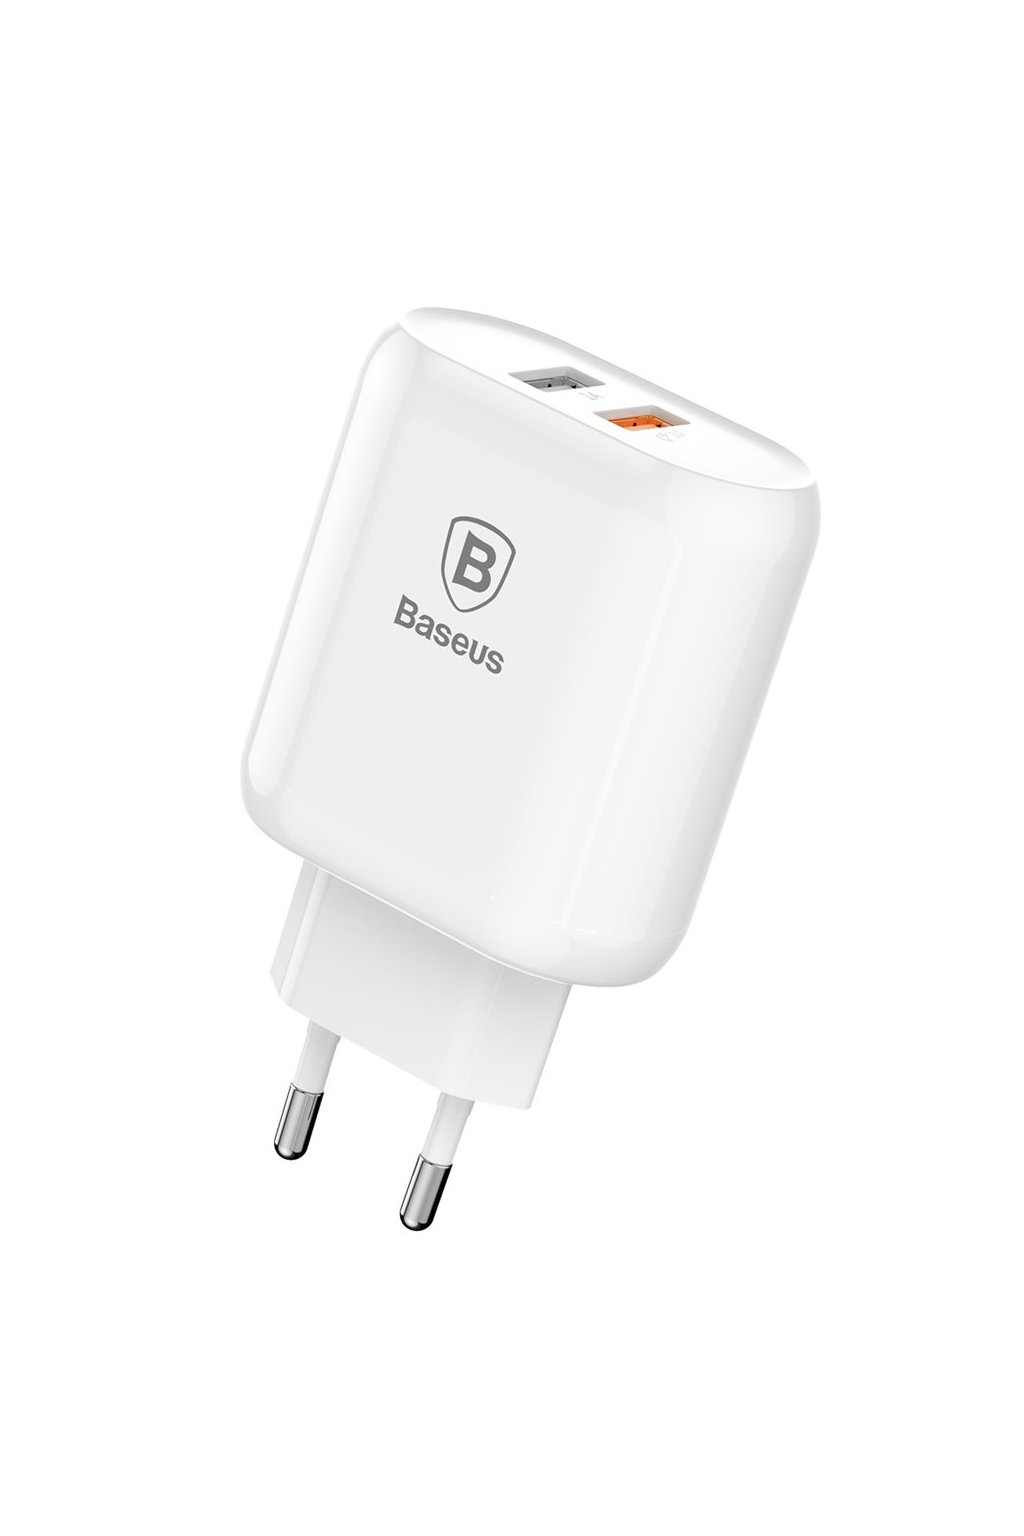 eng pl Baseus Bojure Series Travel Charger Adapter Wall Charger 2x USB 1A Quick Charge 3 0 QC 3 0 23W white CCALL AG02 40771 1